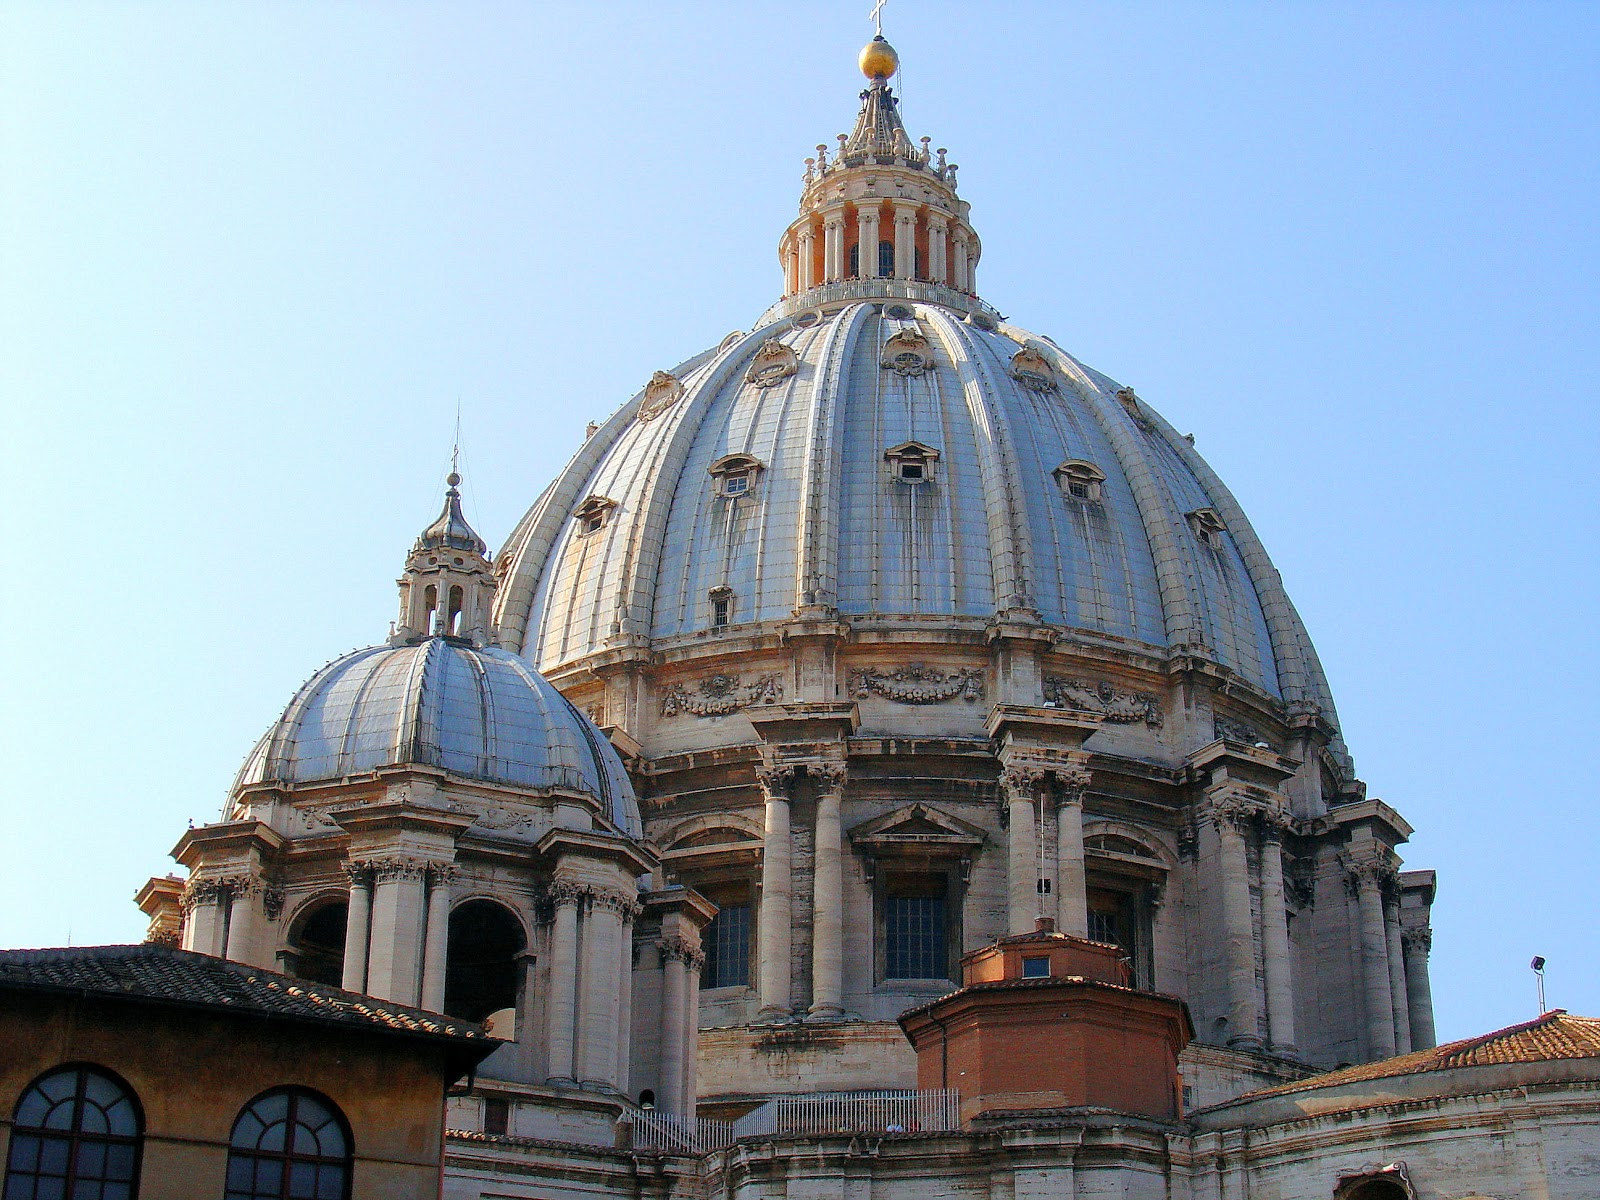 Michelangelo's Cupola at Saint Peter's Basilica in Rome.